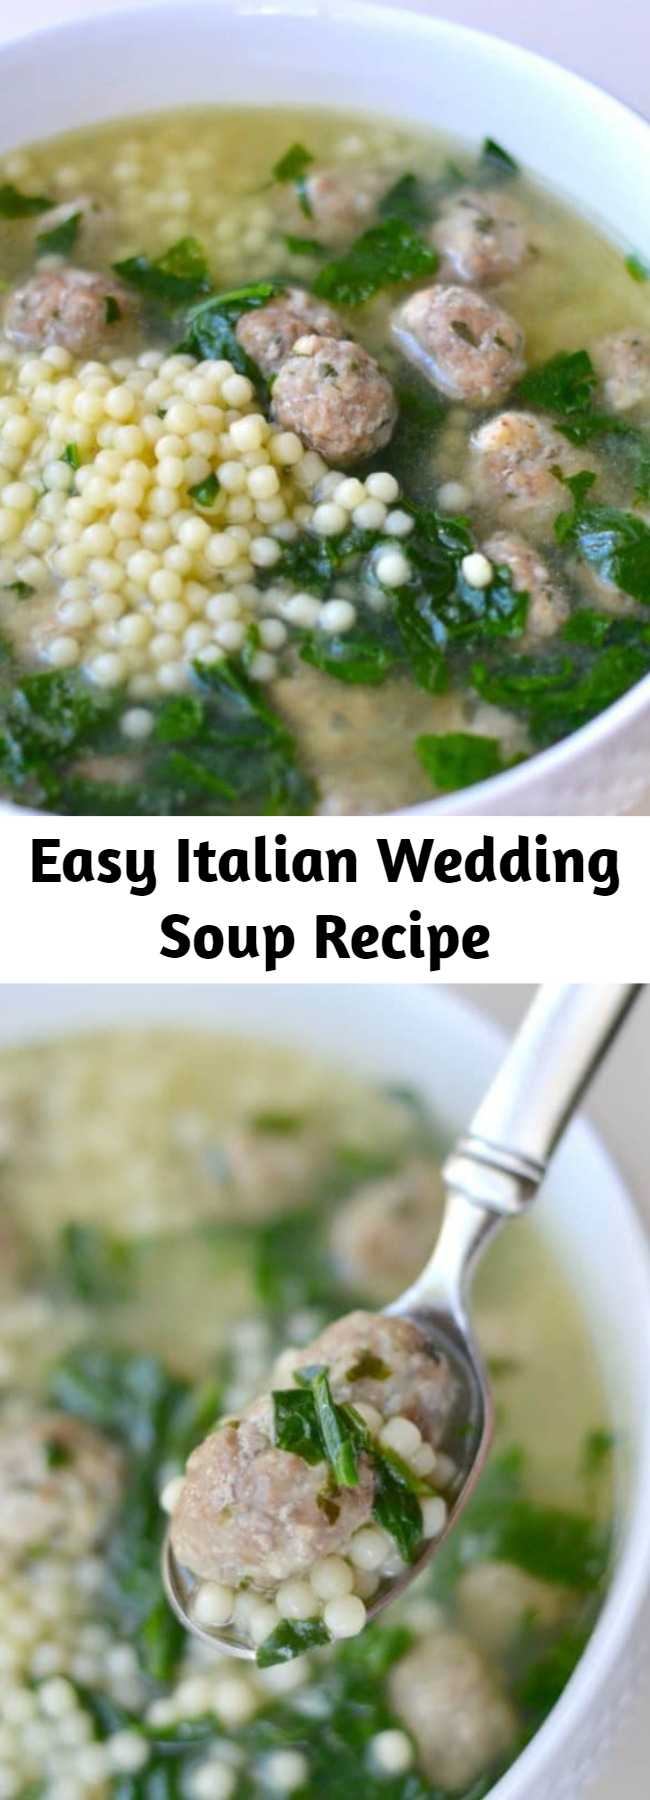 Easy Italian Wedding Soup Recipe - A delicious Italian Wedding soup recipe containing pasta, mini meatballs, spinach, and a flavorful broth.This Italian wedding soup recipe is simple to make and the absolute BEST thing to eat! My whole family loves it, and yours will, too.